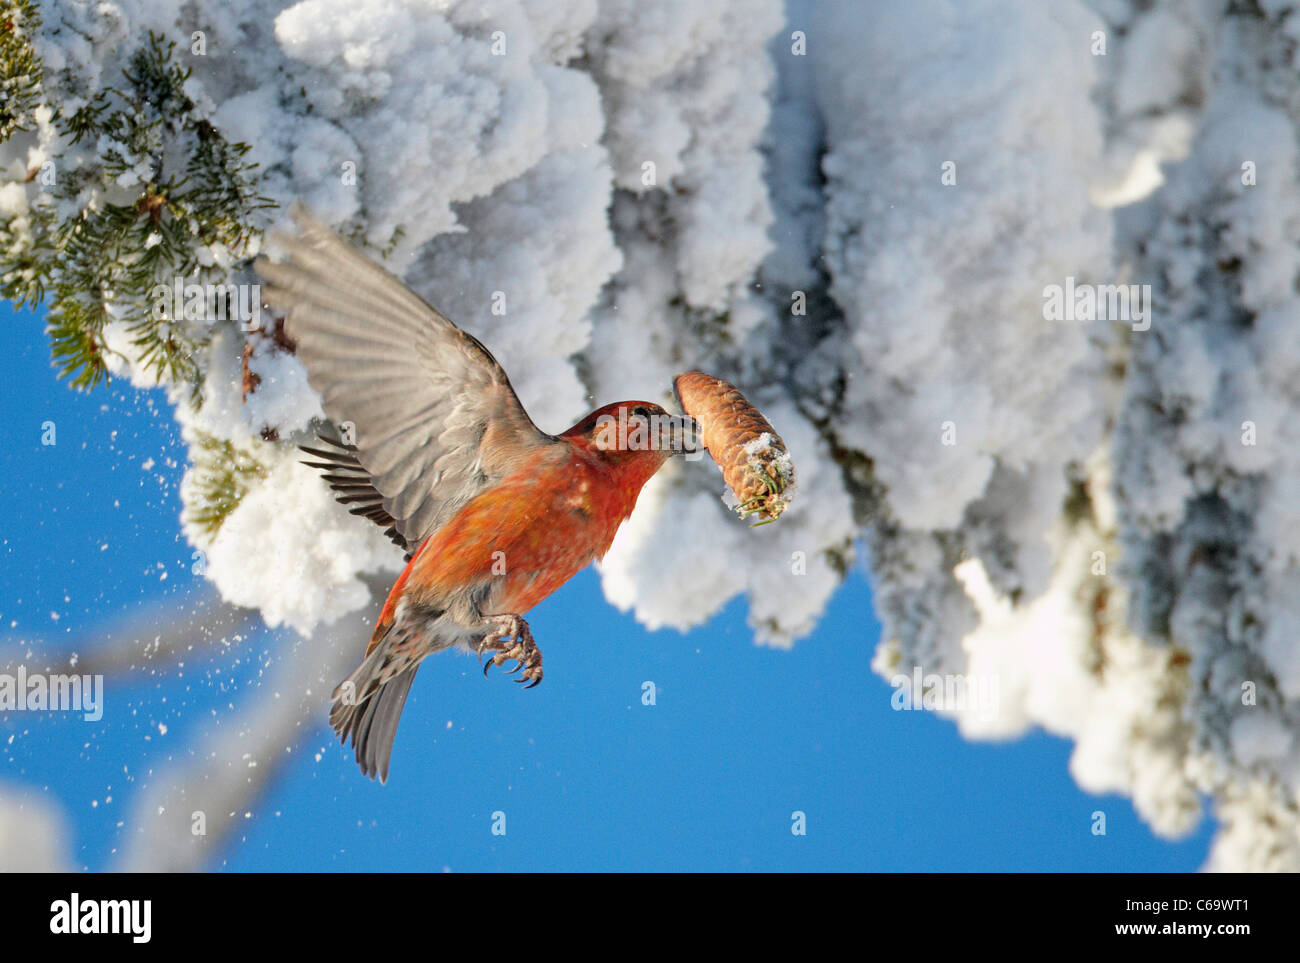 Common Crossbill, Red Crossbill (Loxia curvirostra). Male fetching a cone from a snowy spruce. - Stock Image